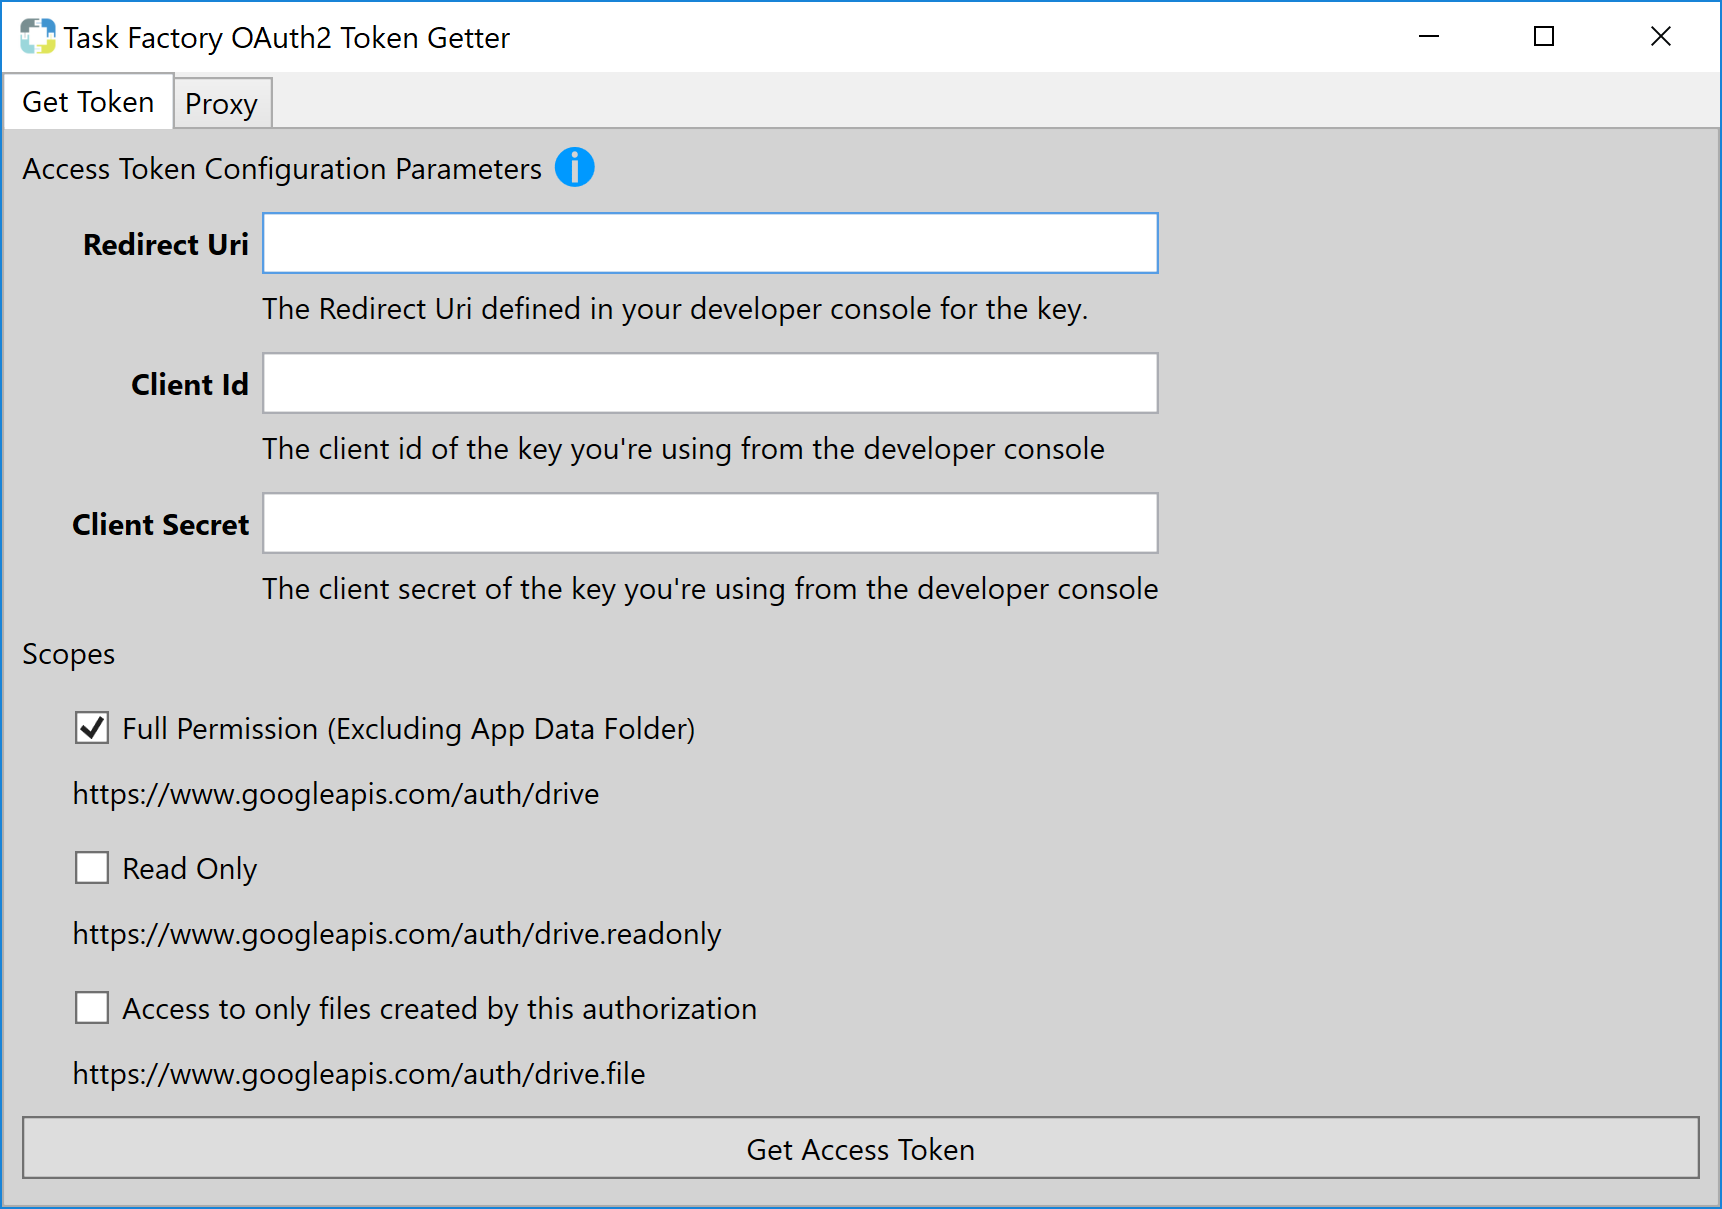 Task Factory Google Drive OAuth2 Token Getter